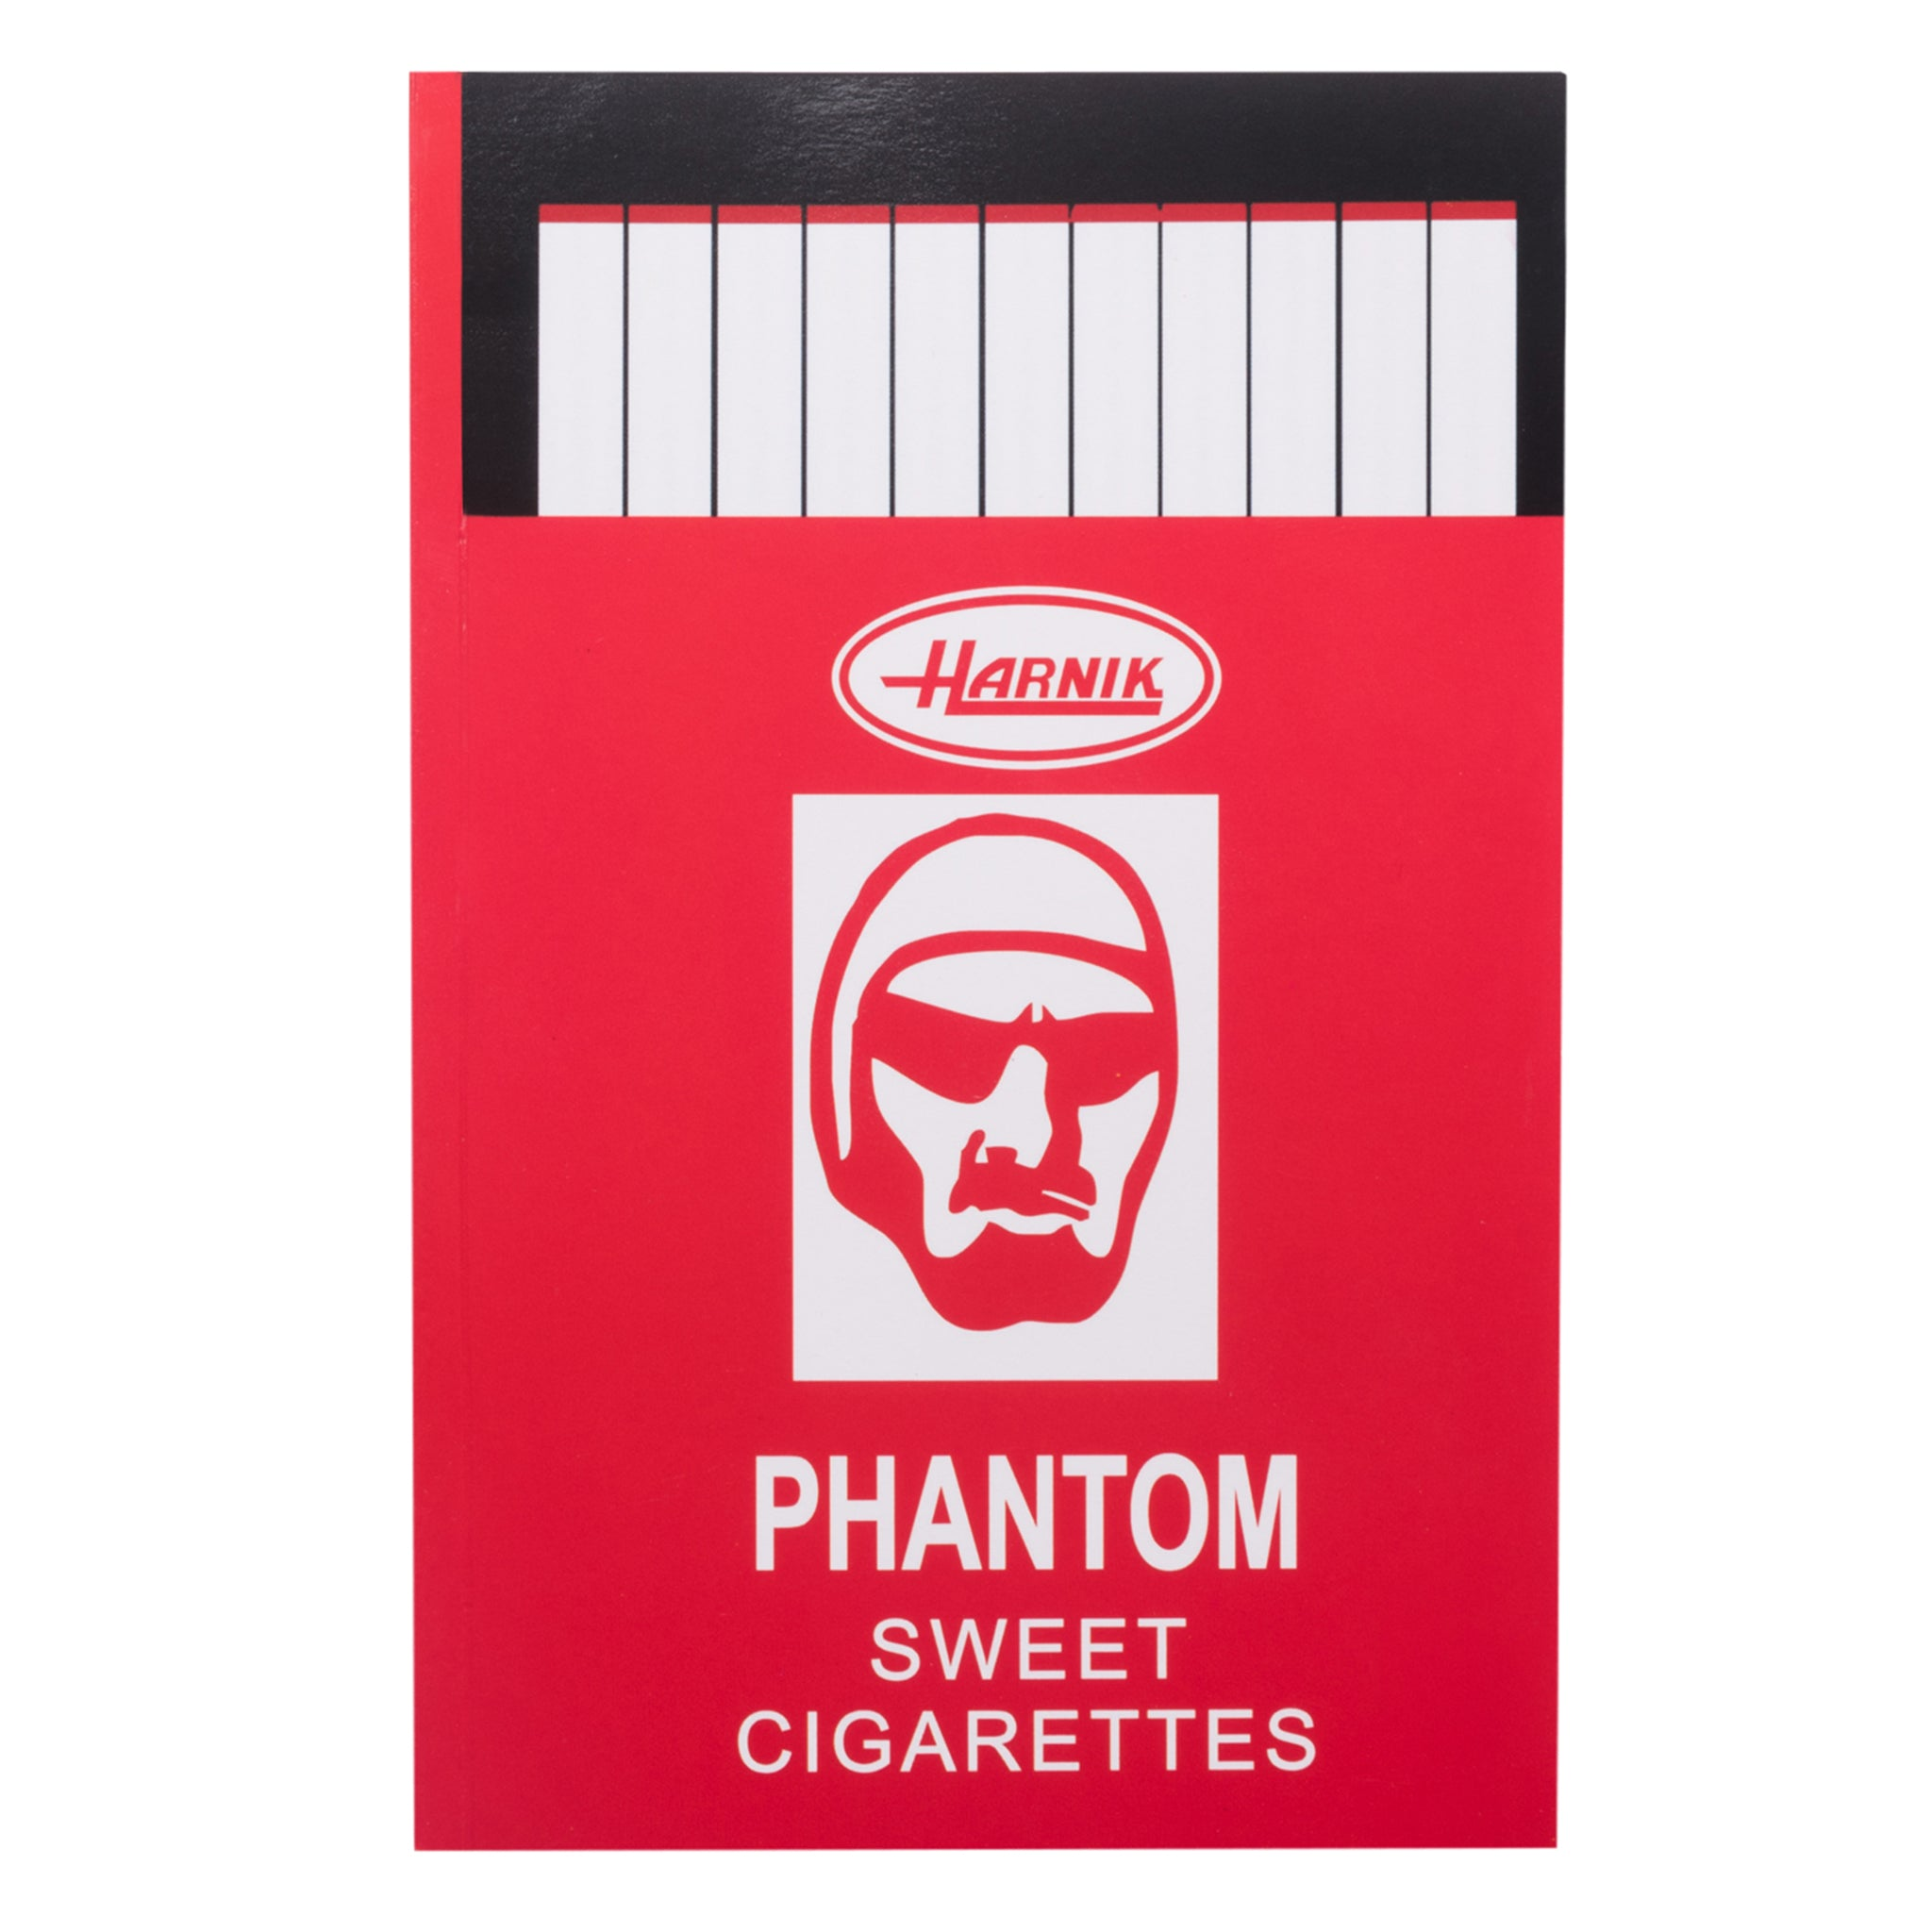 'Phantom Sweet Cigarettes' Notebook